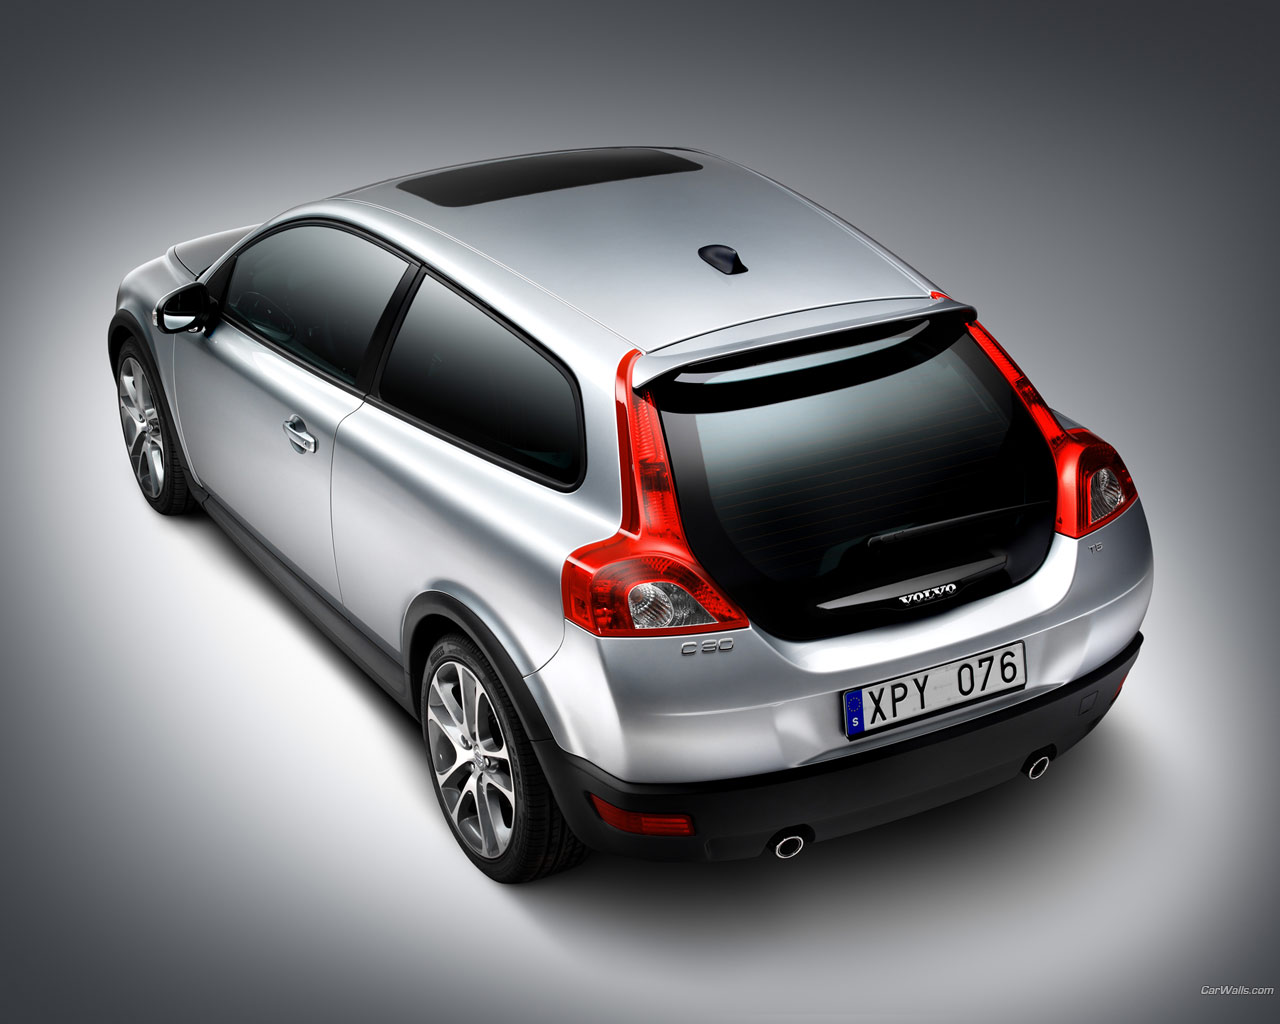 Volvo Wallpapers For The Enthusias Pv544 Wiring Diagram